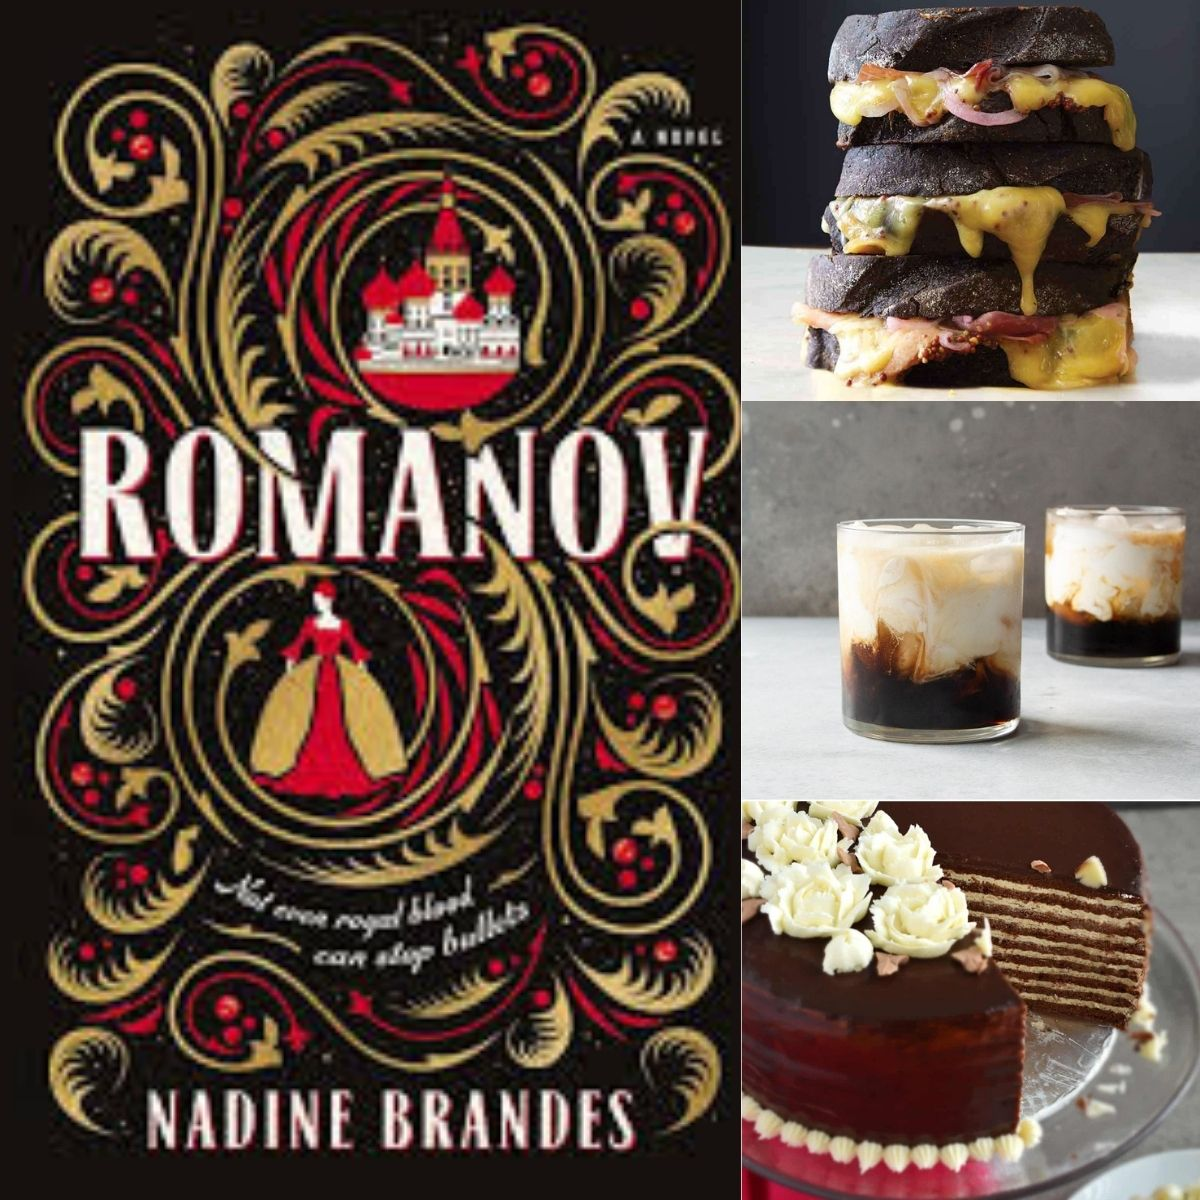 A collage of foods inspired by the book Romanov by Nadine Brandes